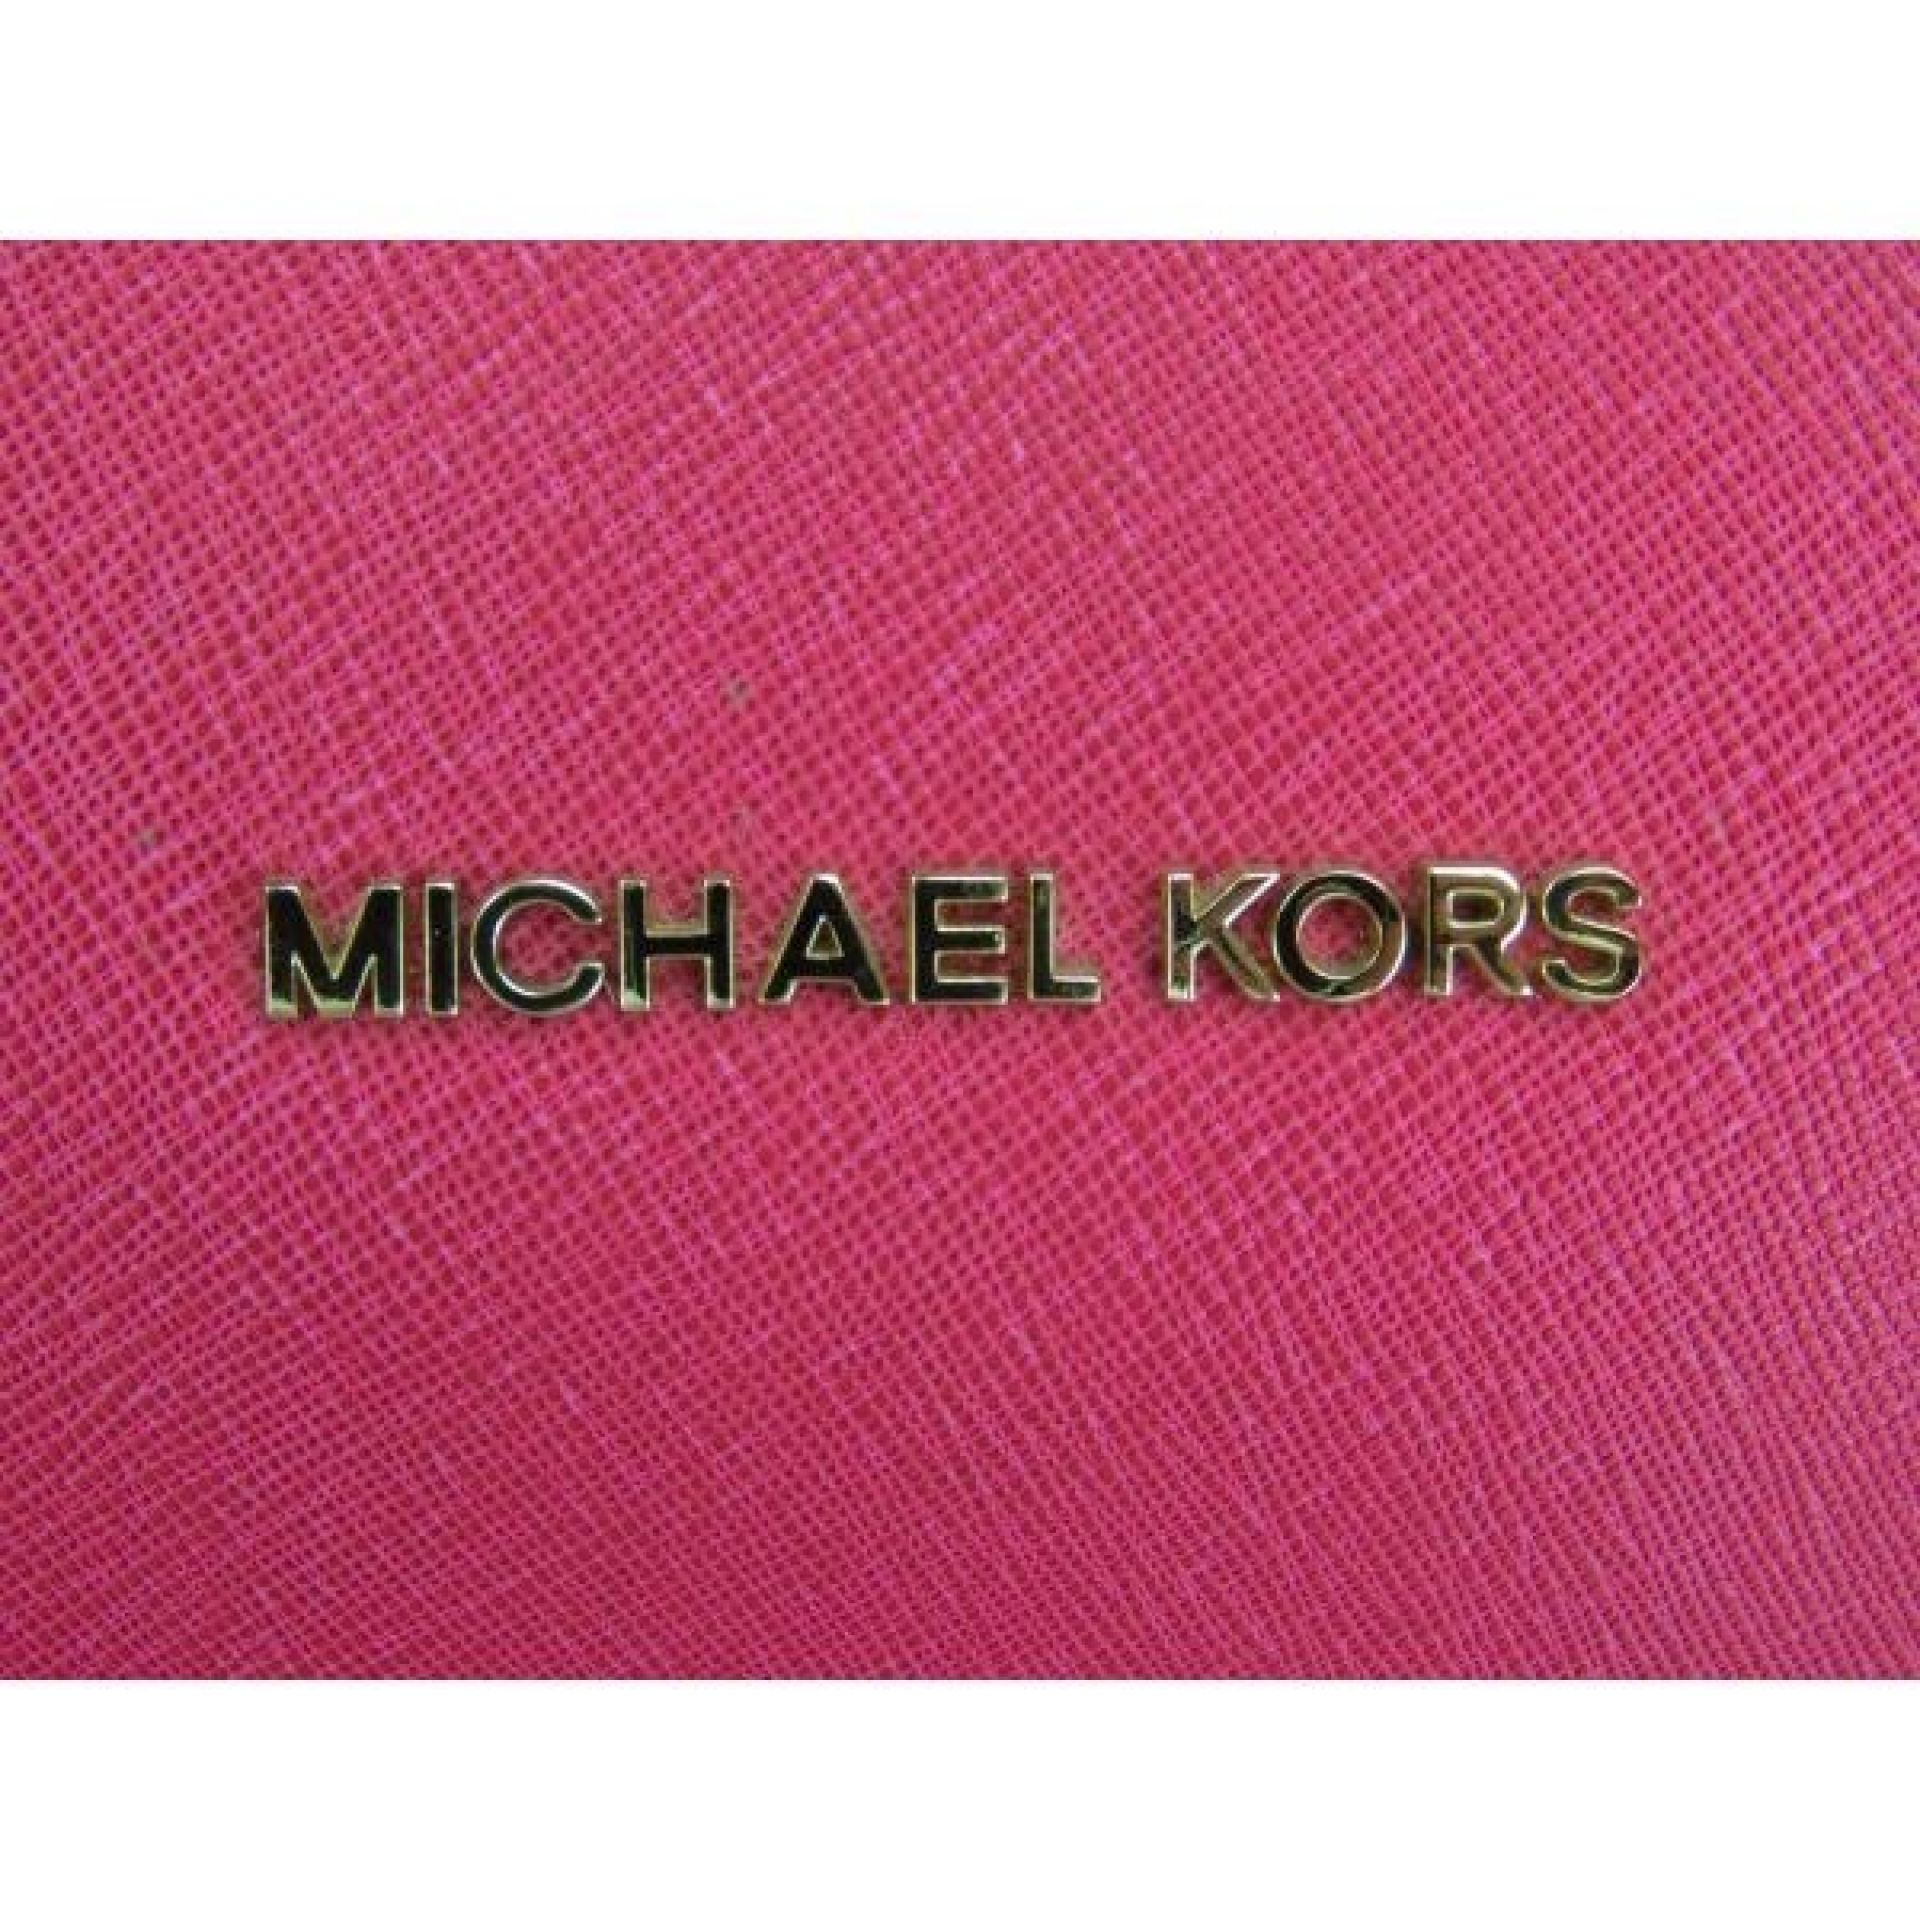 MICHAEL Michael Kors Pink Saffiano Leather Jet Set East West Tote Bag